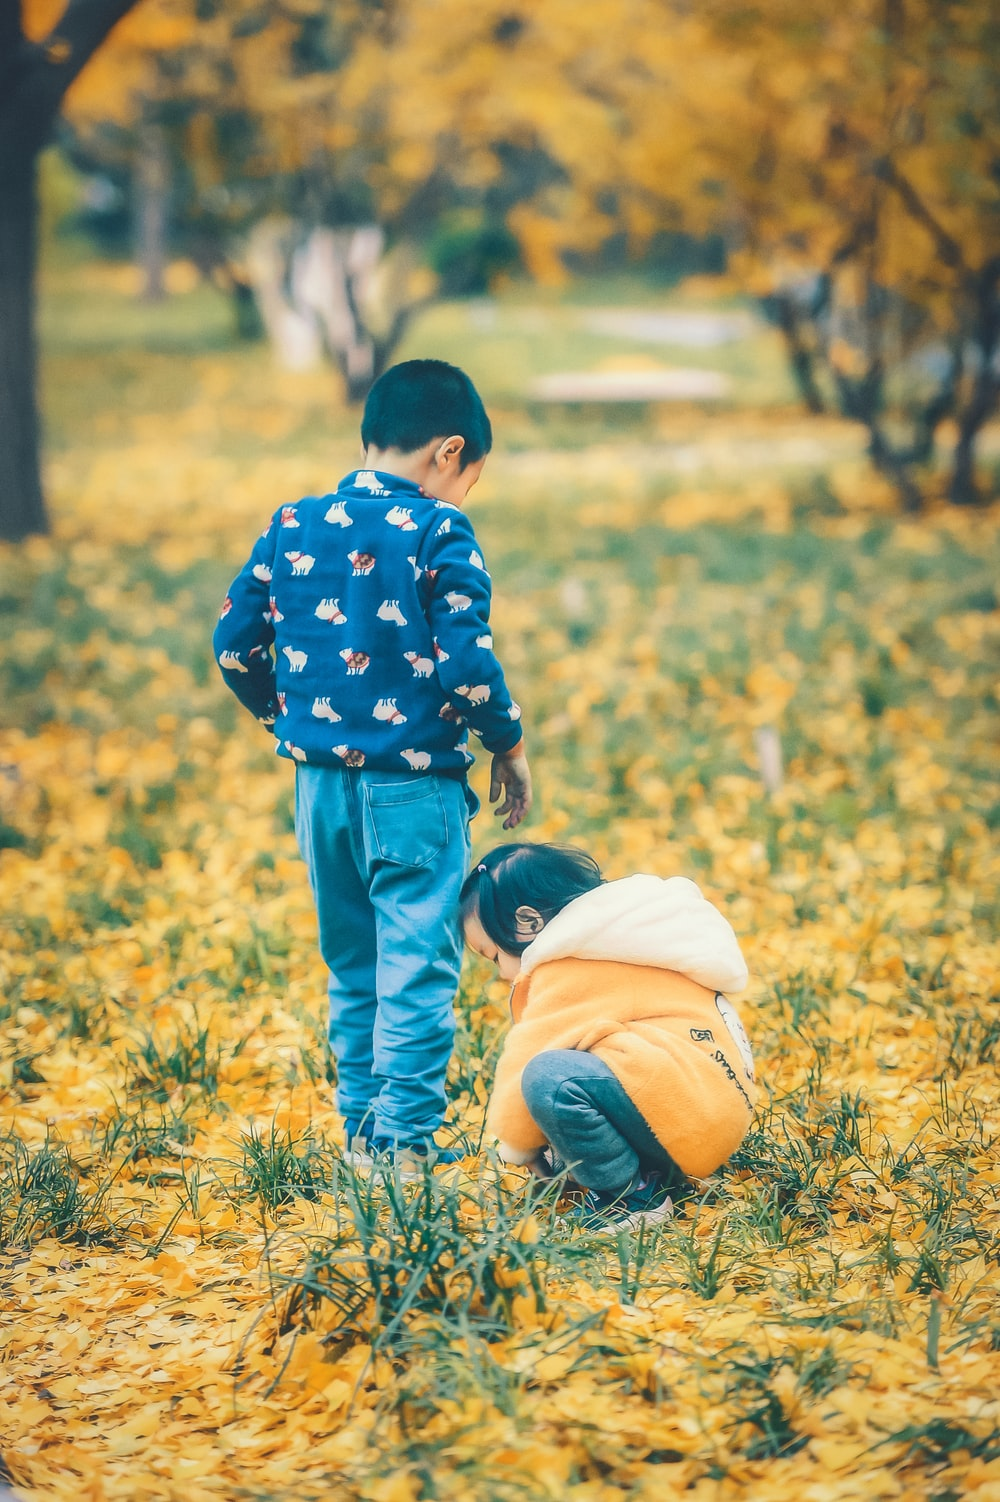 child wearing orange and white jacket picking grass and another child standing while looking down